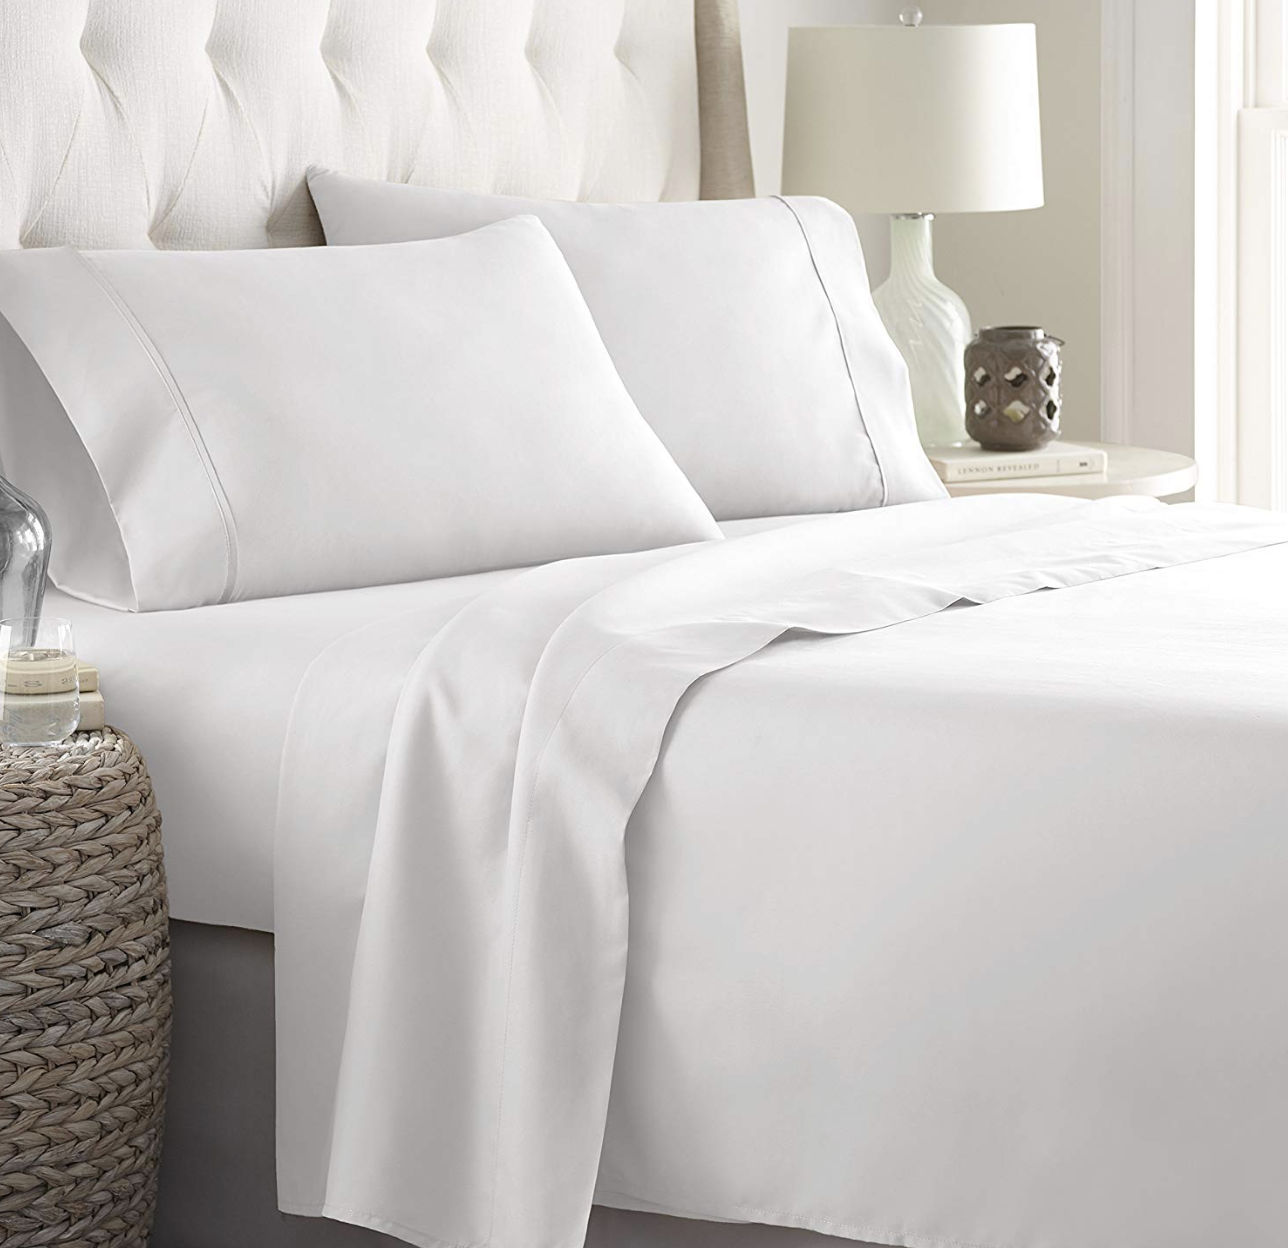 HC Collection Hypoallergenic Sheet and Pillow Case Bedding Set